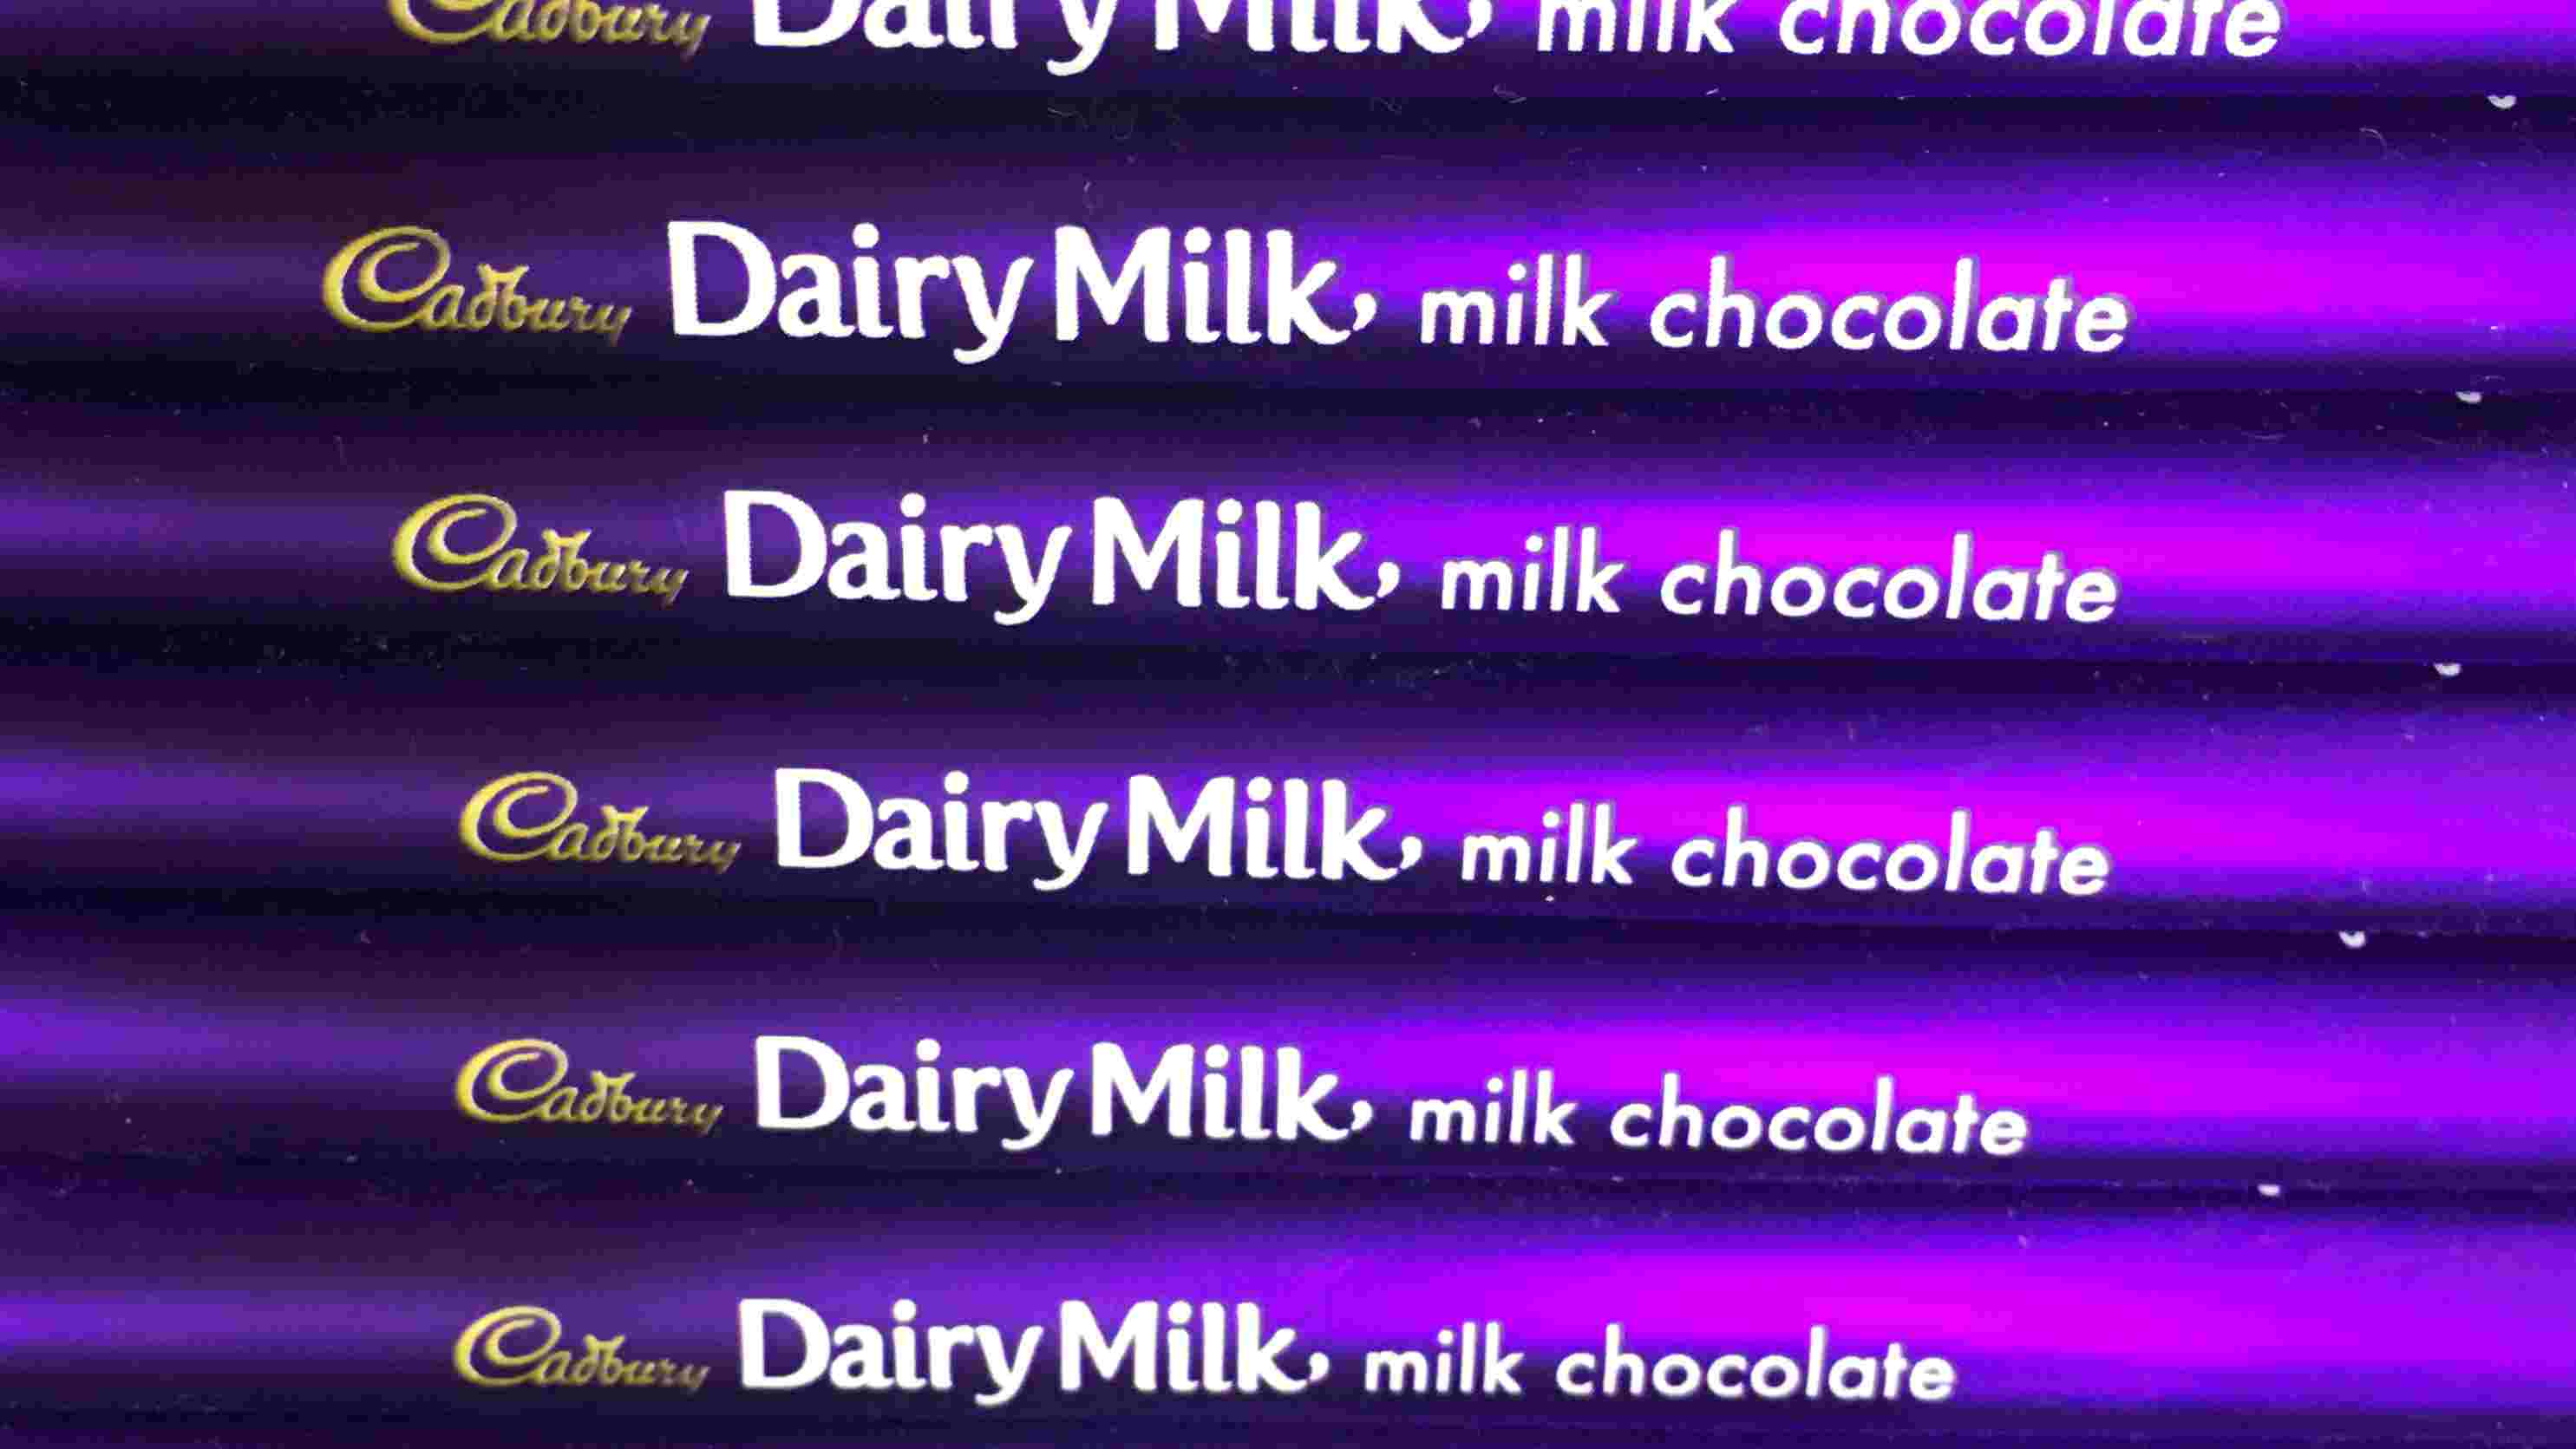 Outrage over Cadbury changing iconic Dairy Milk chocolate recipe